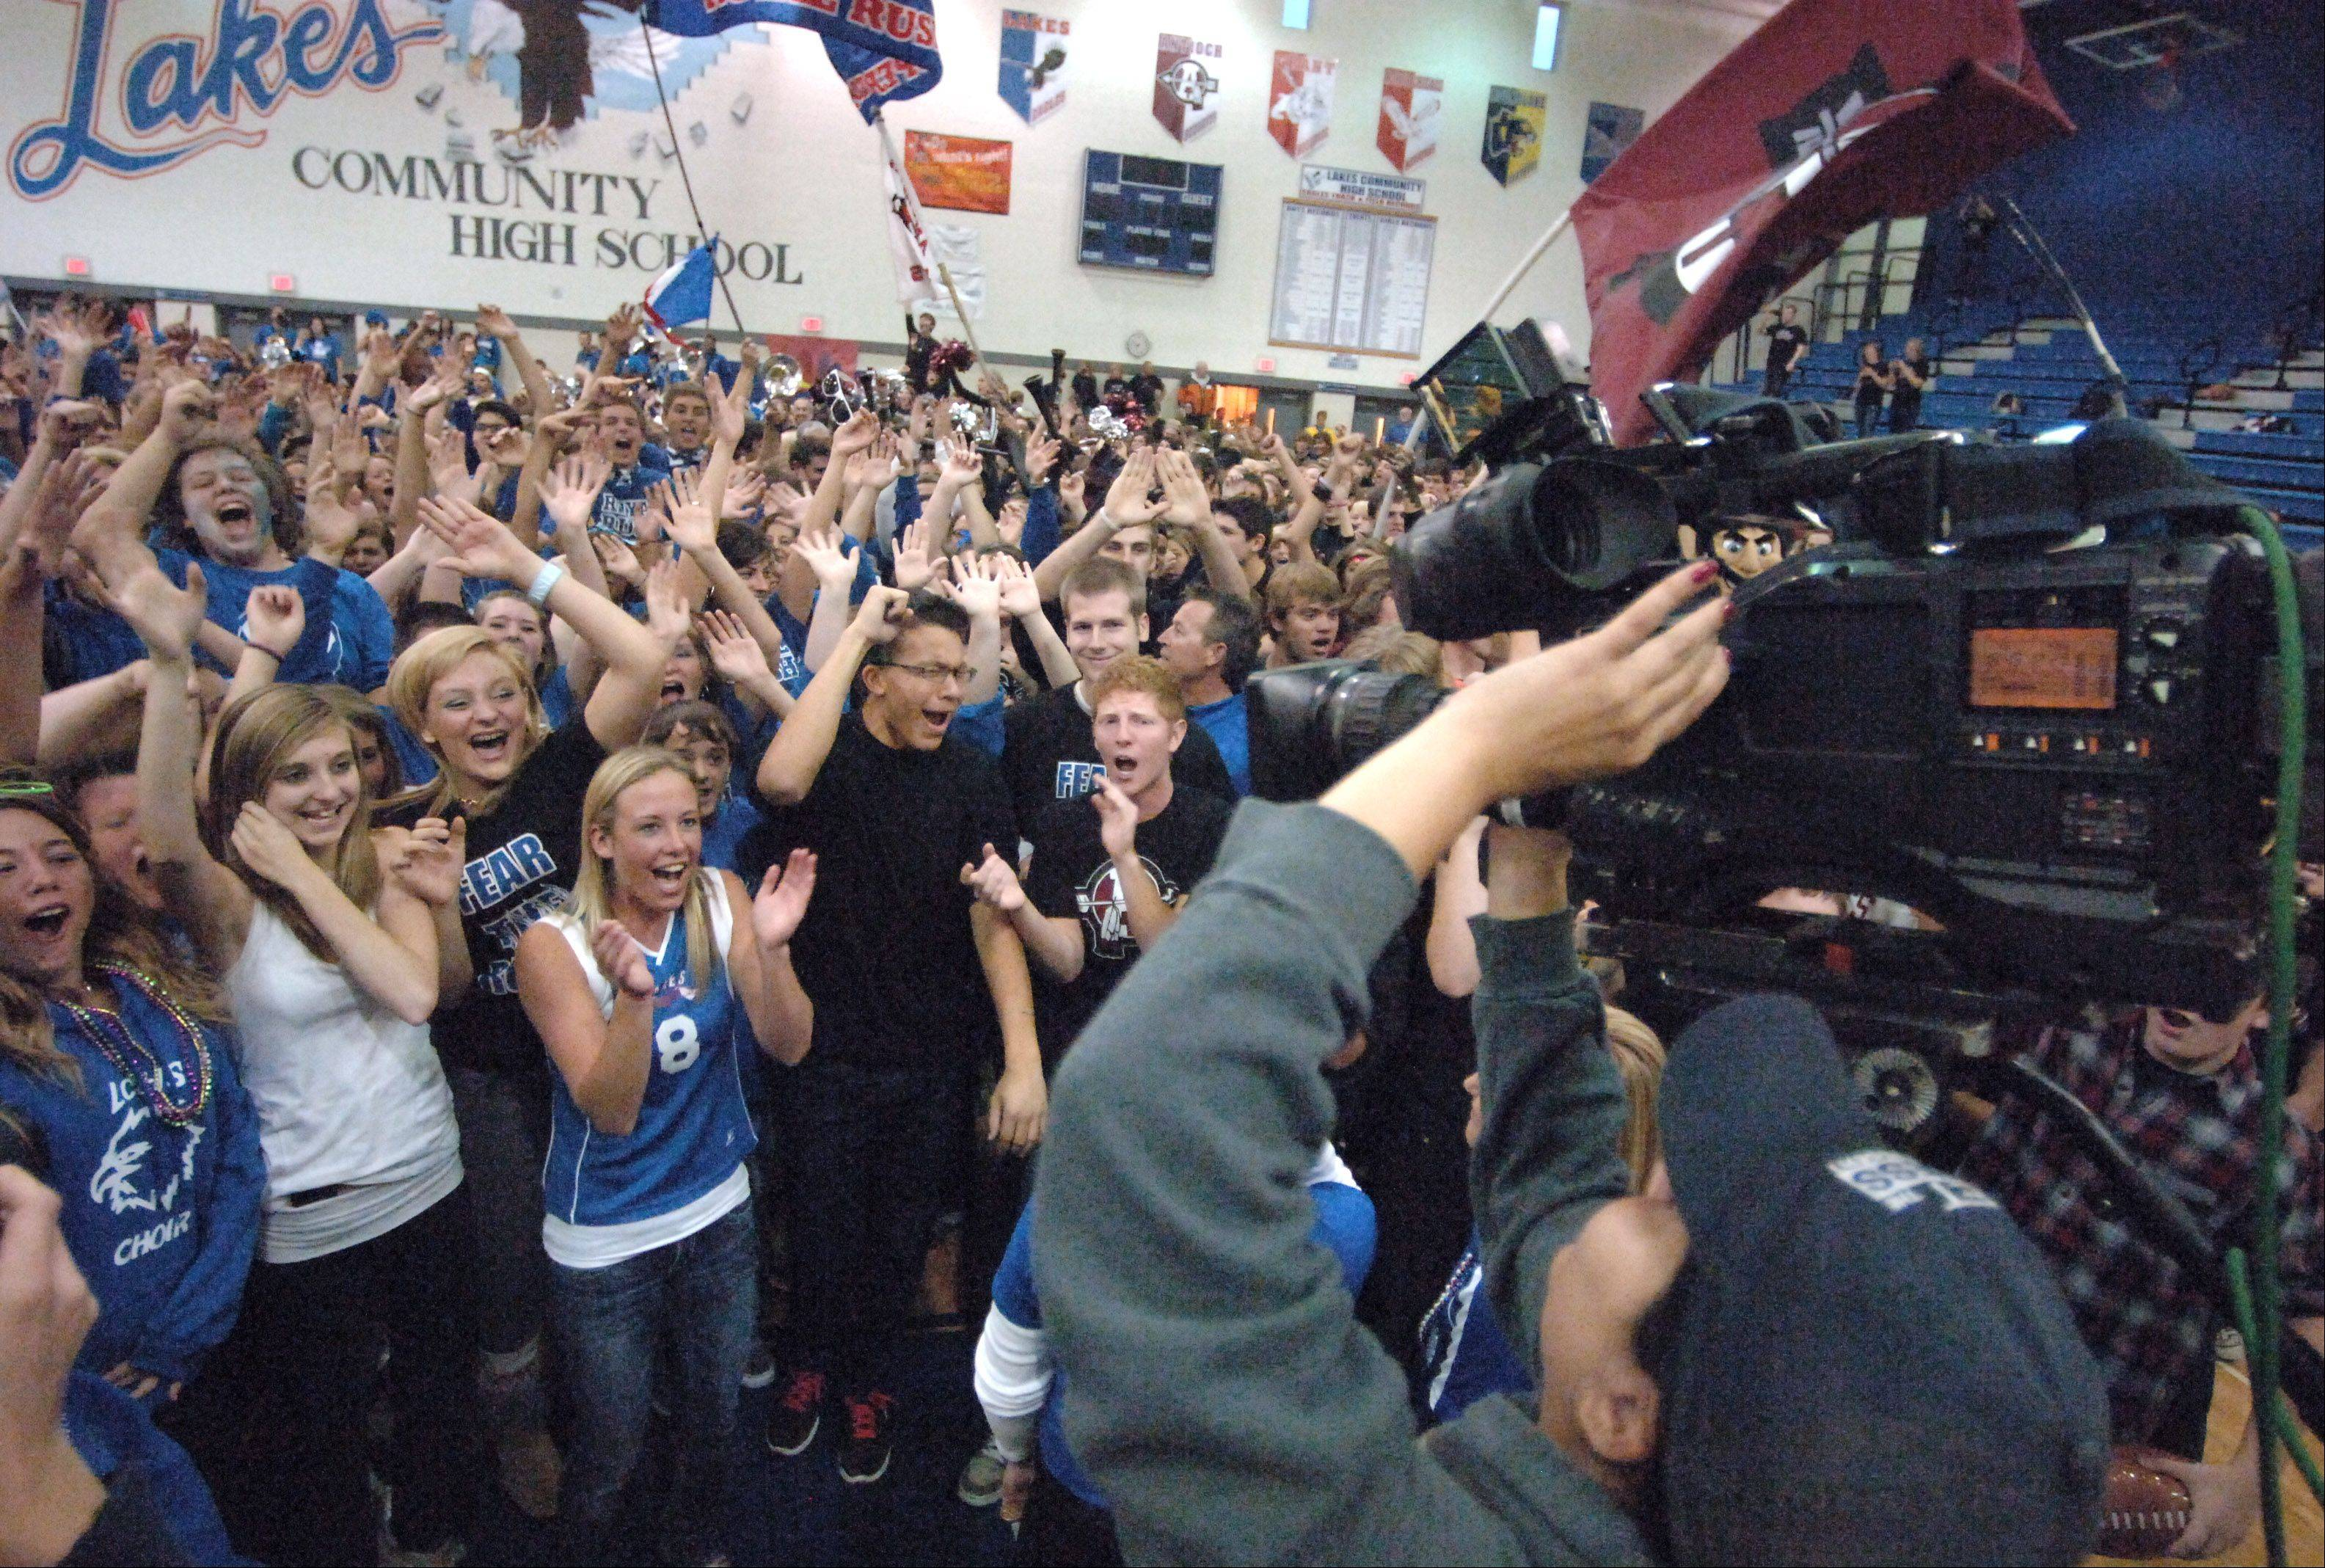 "Antioch and Lakes high schools participate in NBC 5 News Today's ""Prep Destination of the Week"" with students packing Lakes' gymnasium early Friday morning. Channel 5's Maria Ruiz captures the excitement for the live broadcast of the Dance Friday segment in Lake Villa."